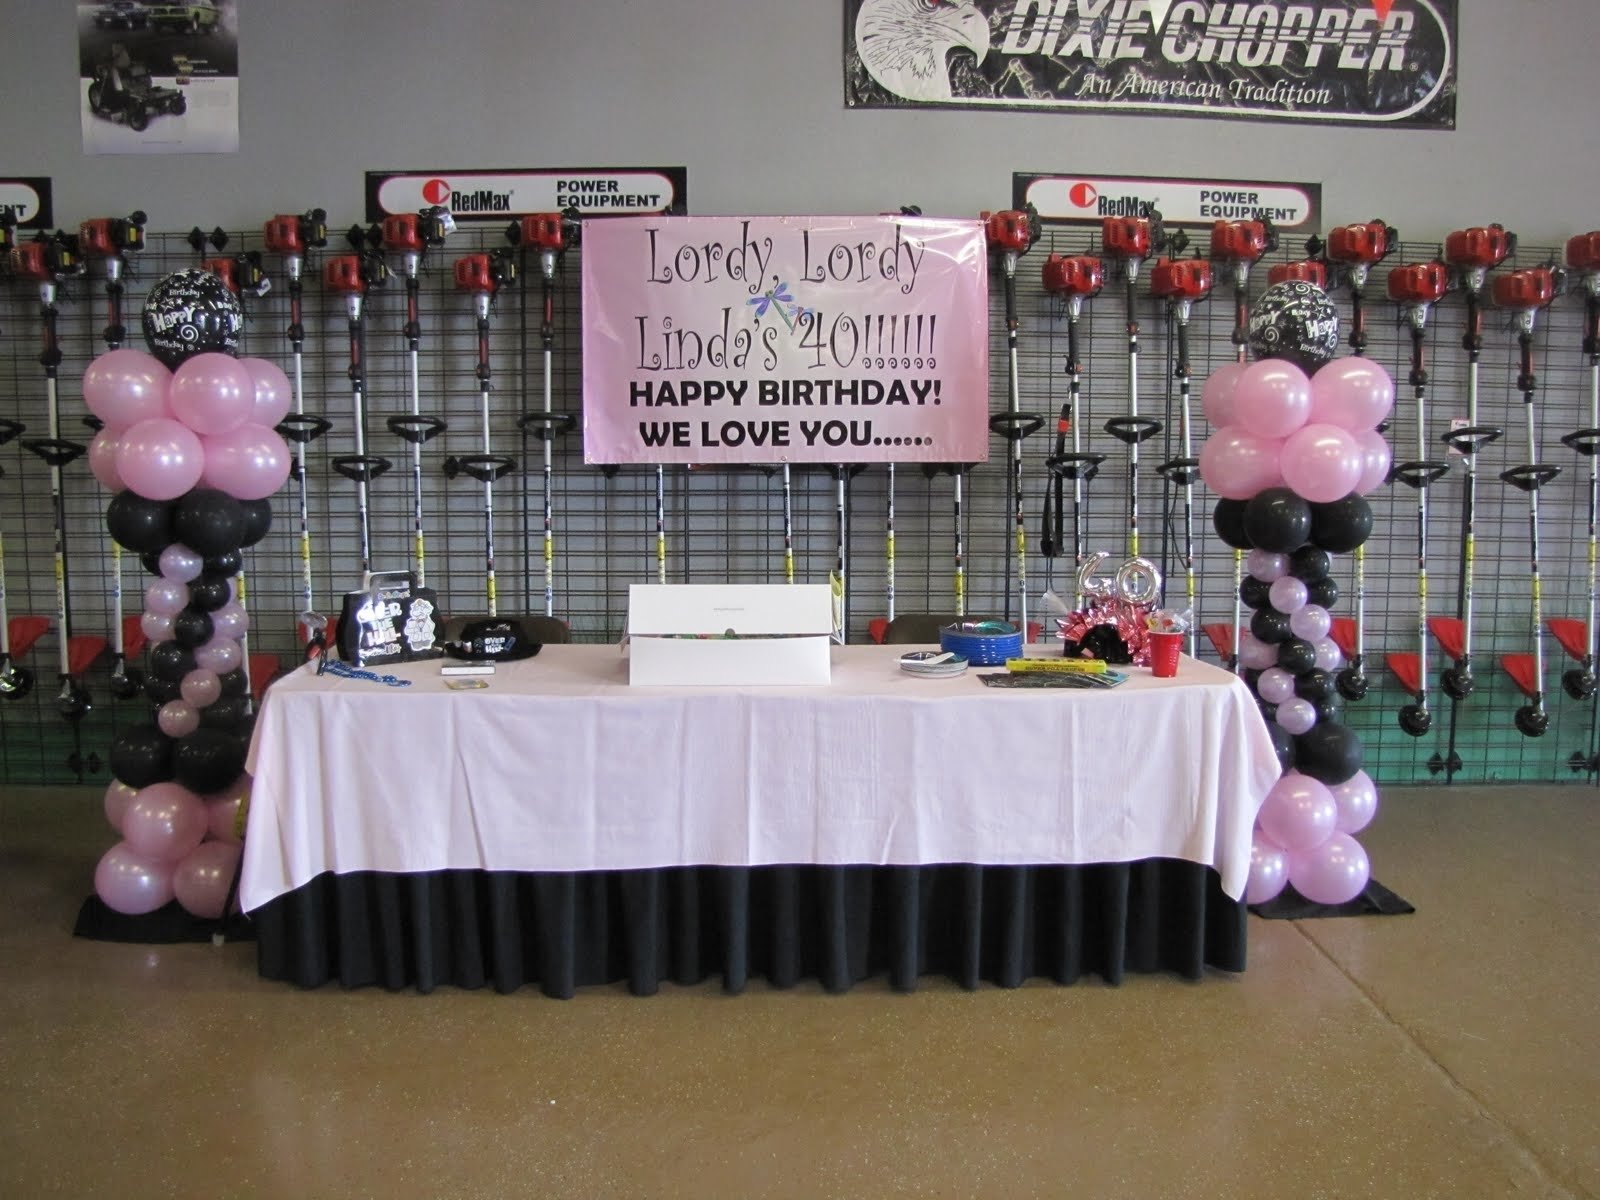 10 Lovely Birthday Celebration Ideas For Women minus the backgroundcute idea for 40th birthday birthdays and 7